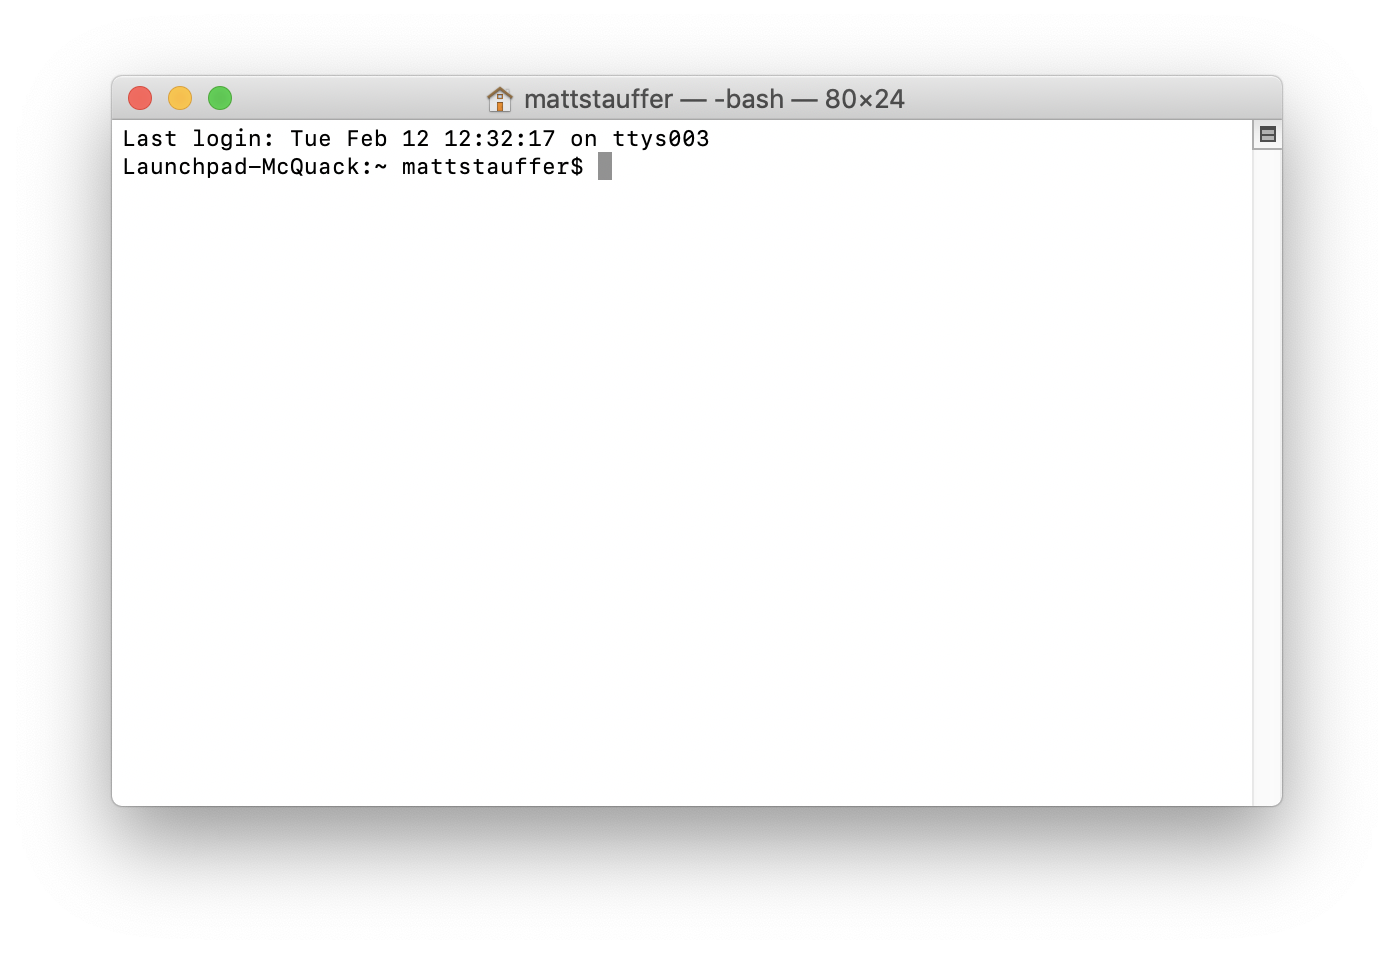 A screenshot of the default macOS terminal